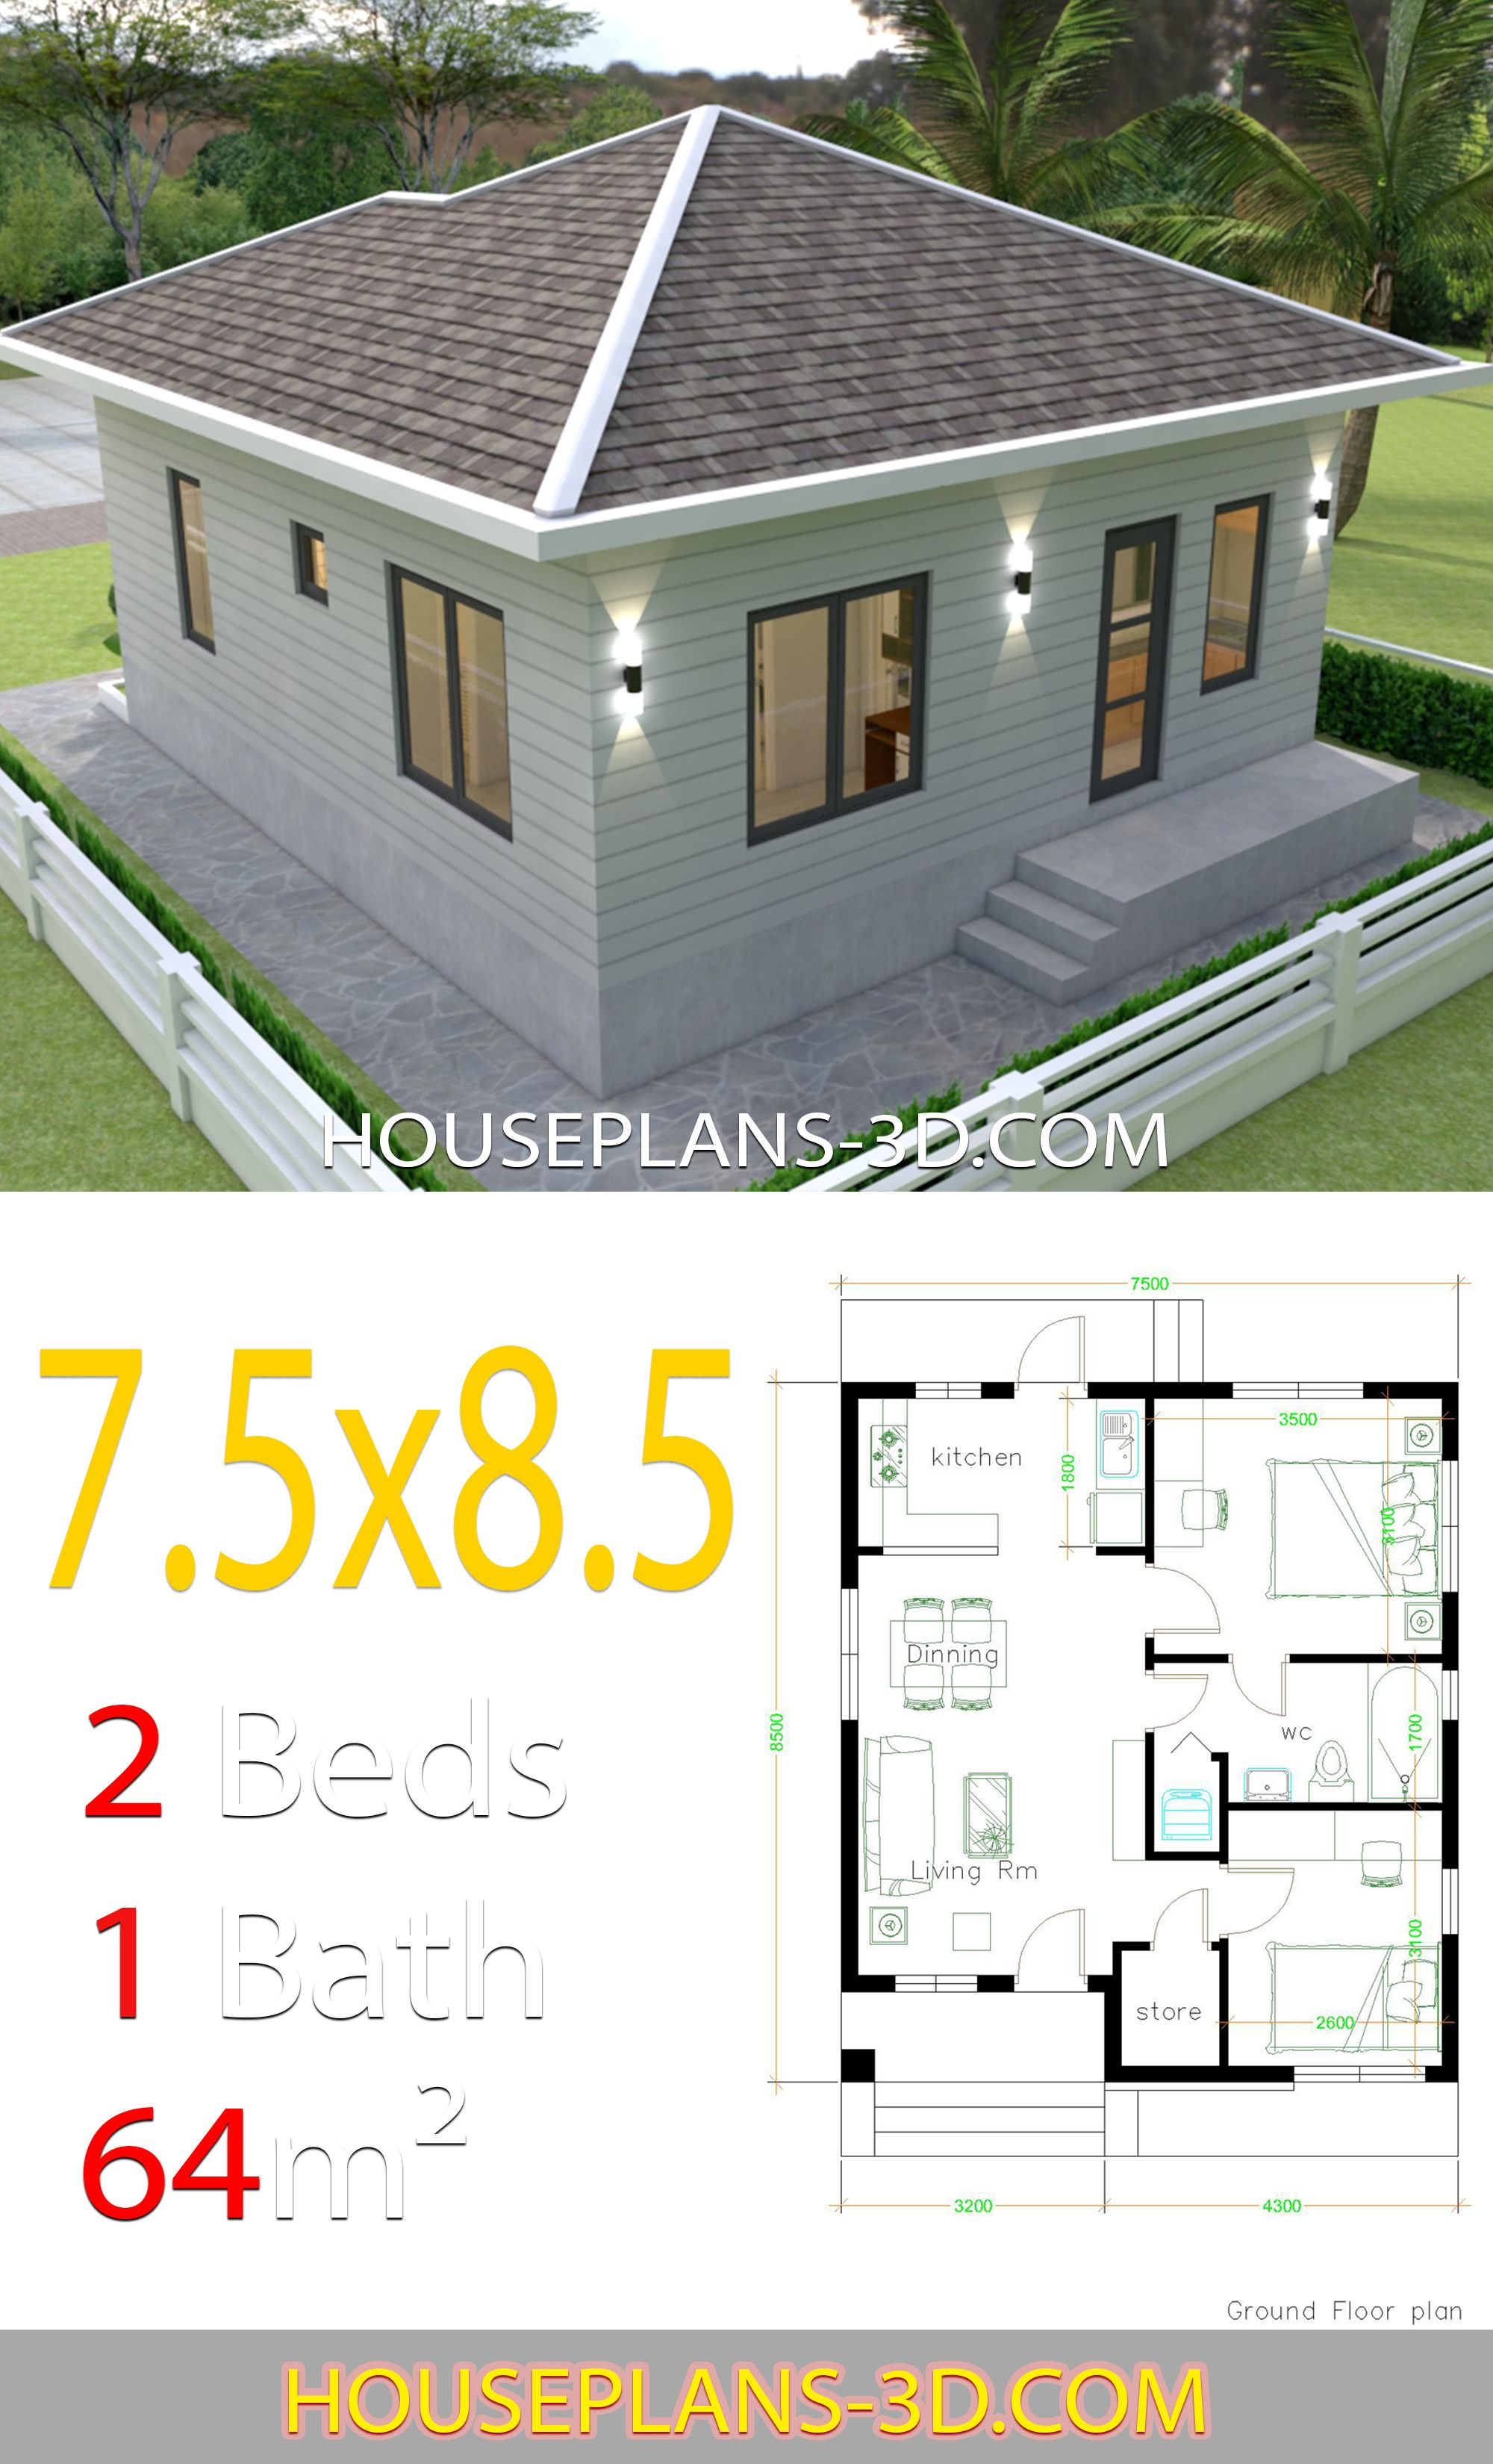 House Design 7 5x8 5 With 2 Bedrooms House Plans Simple House Design 2 Bedroom House Plans